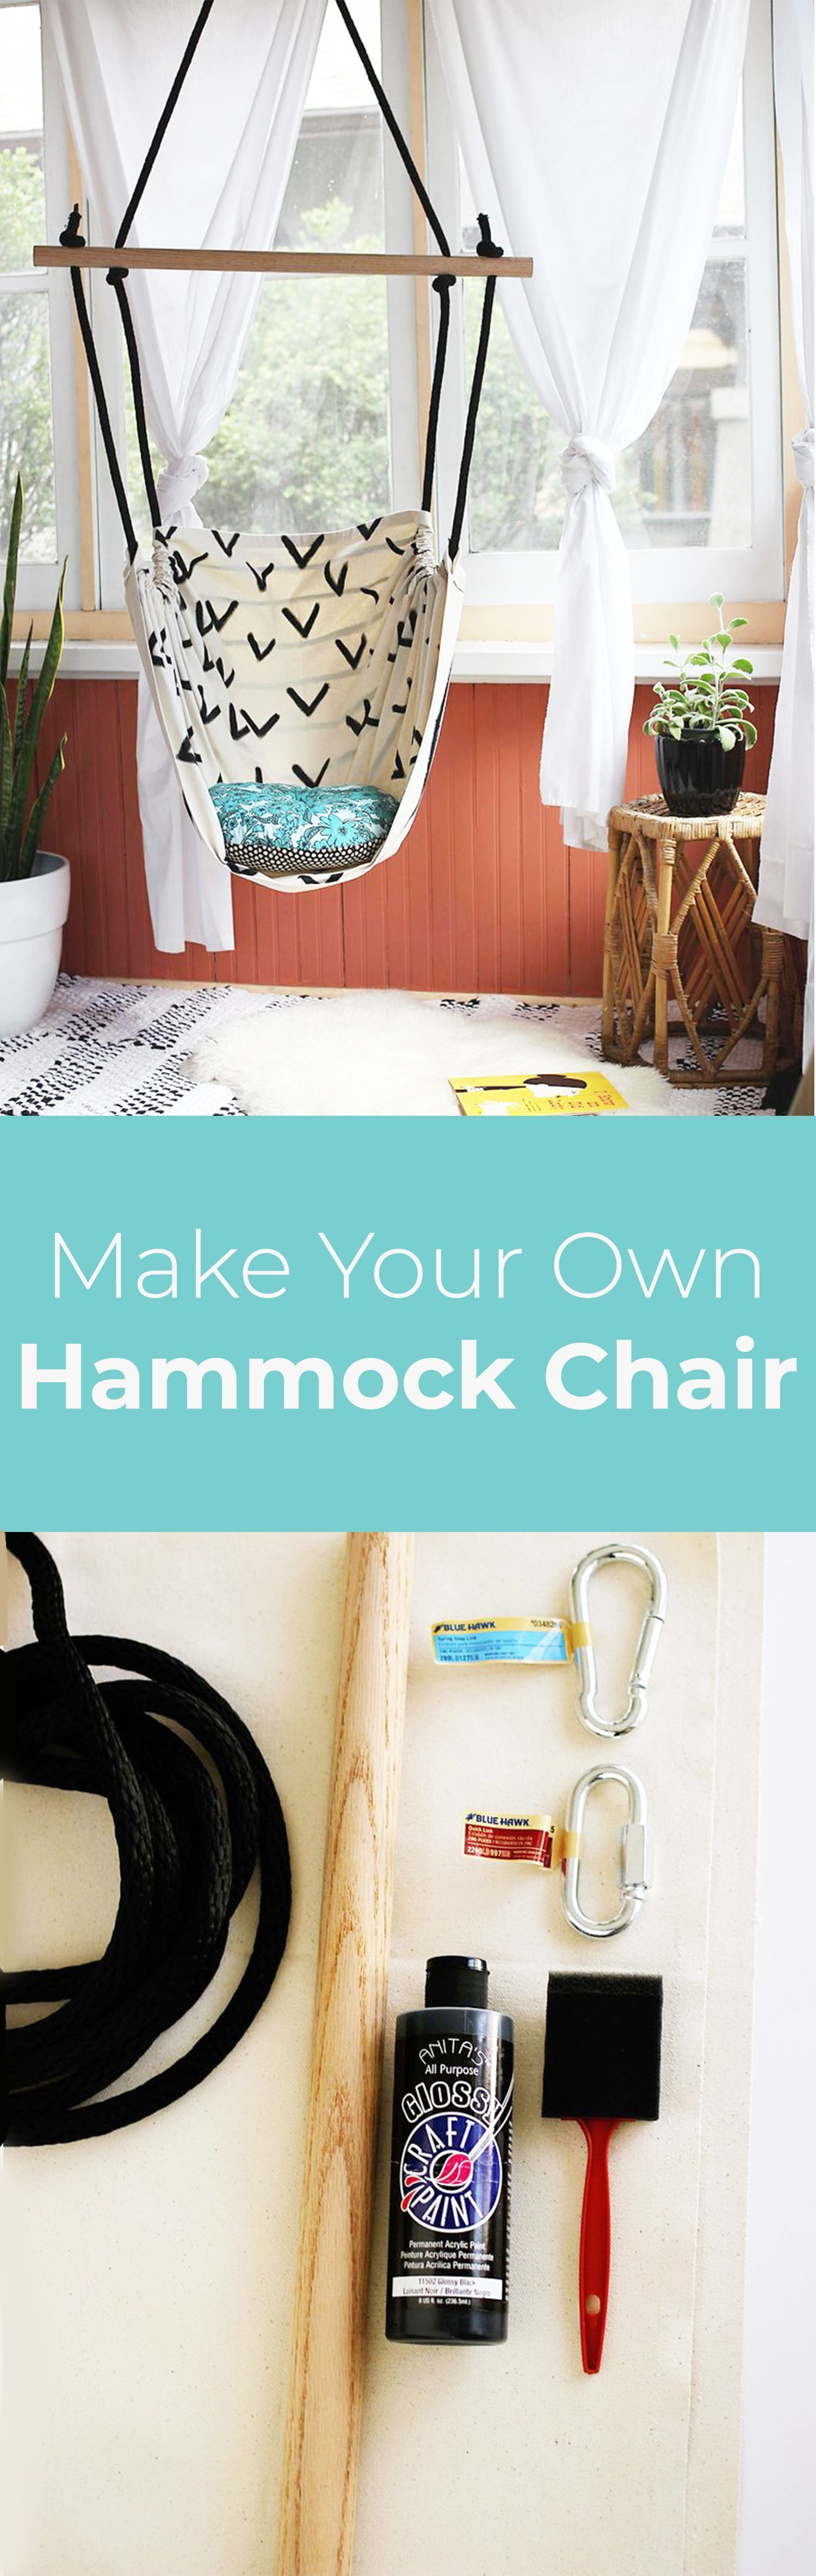 diy projects you must have for your new apartment hammock chair